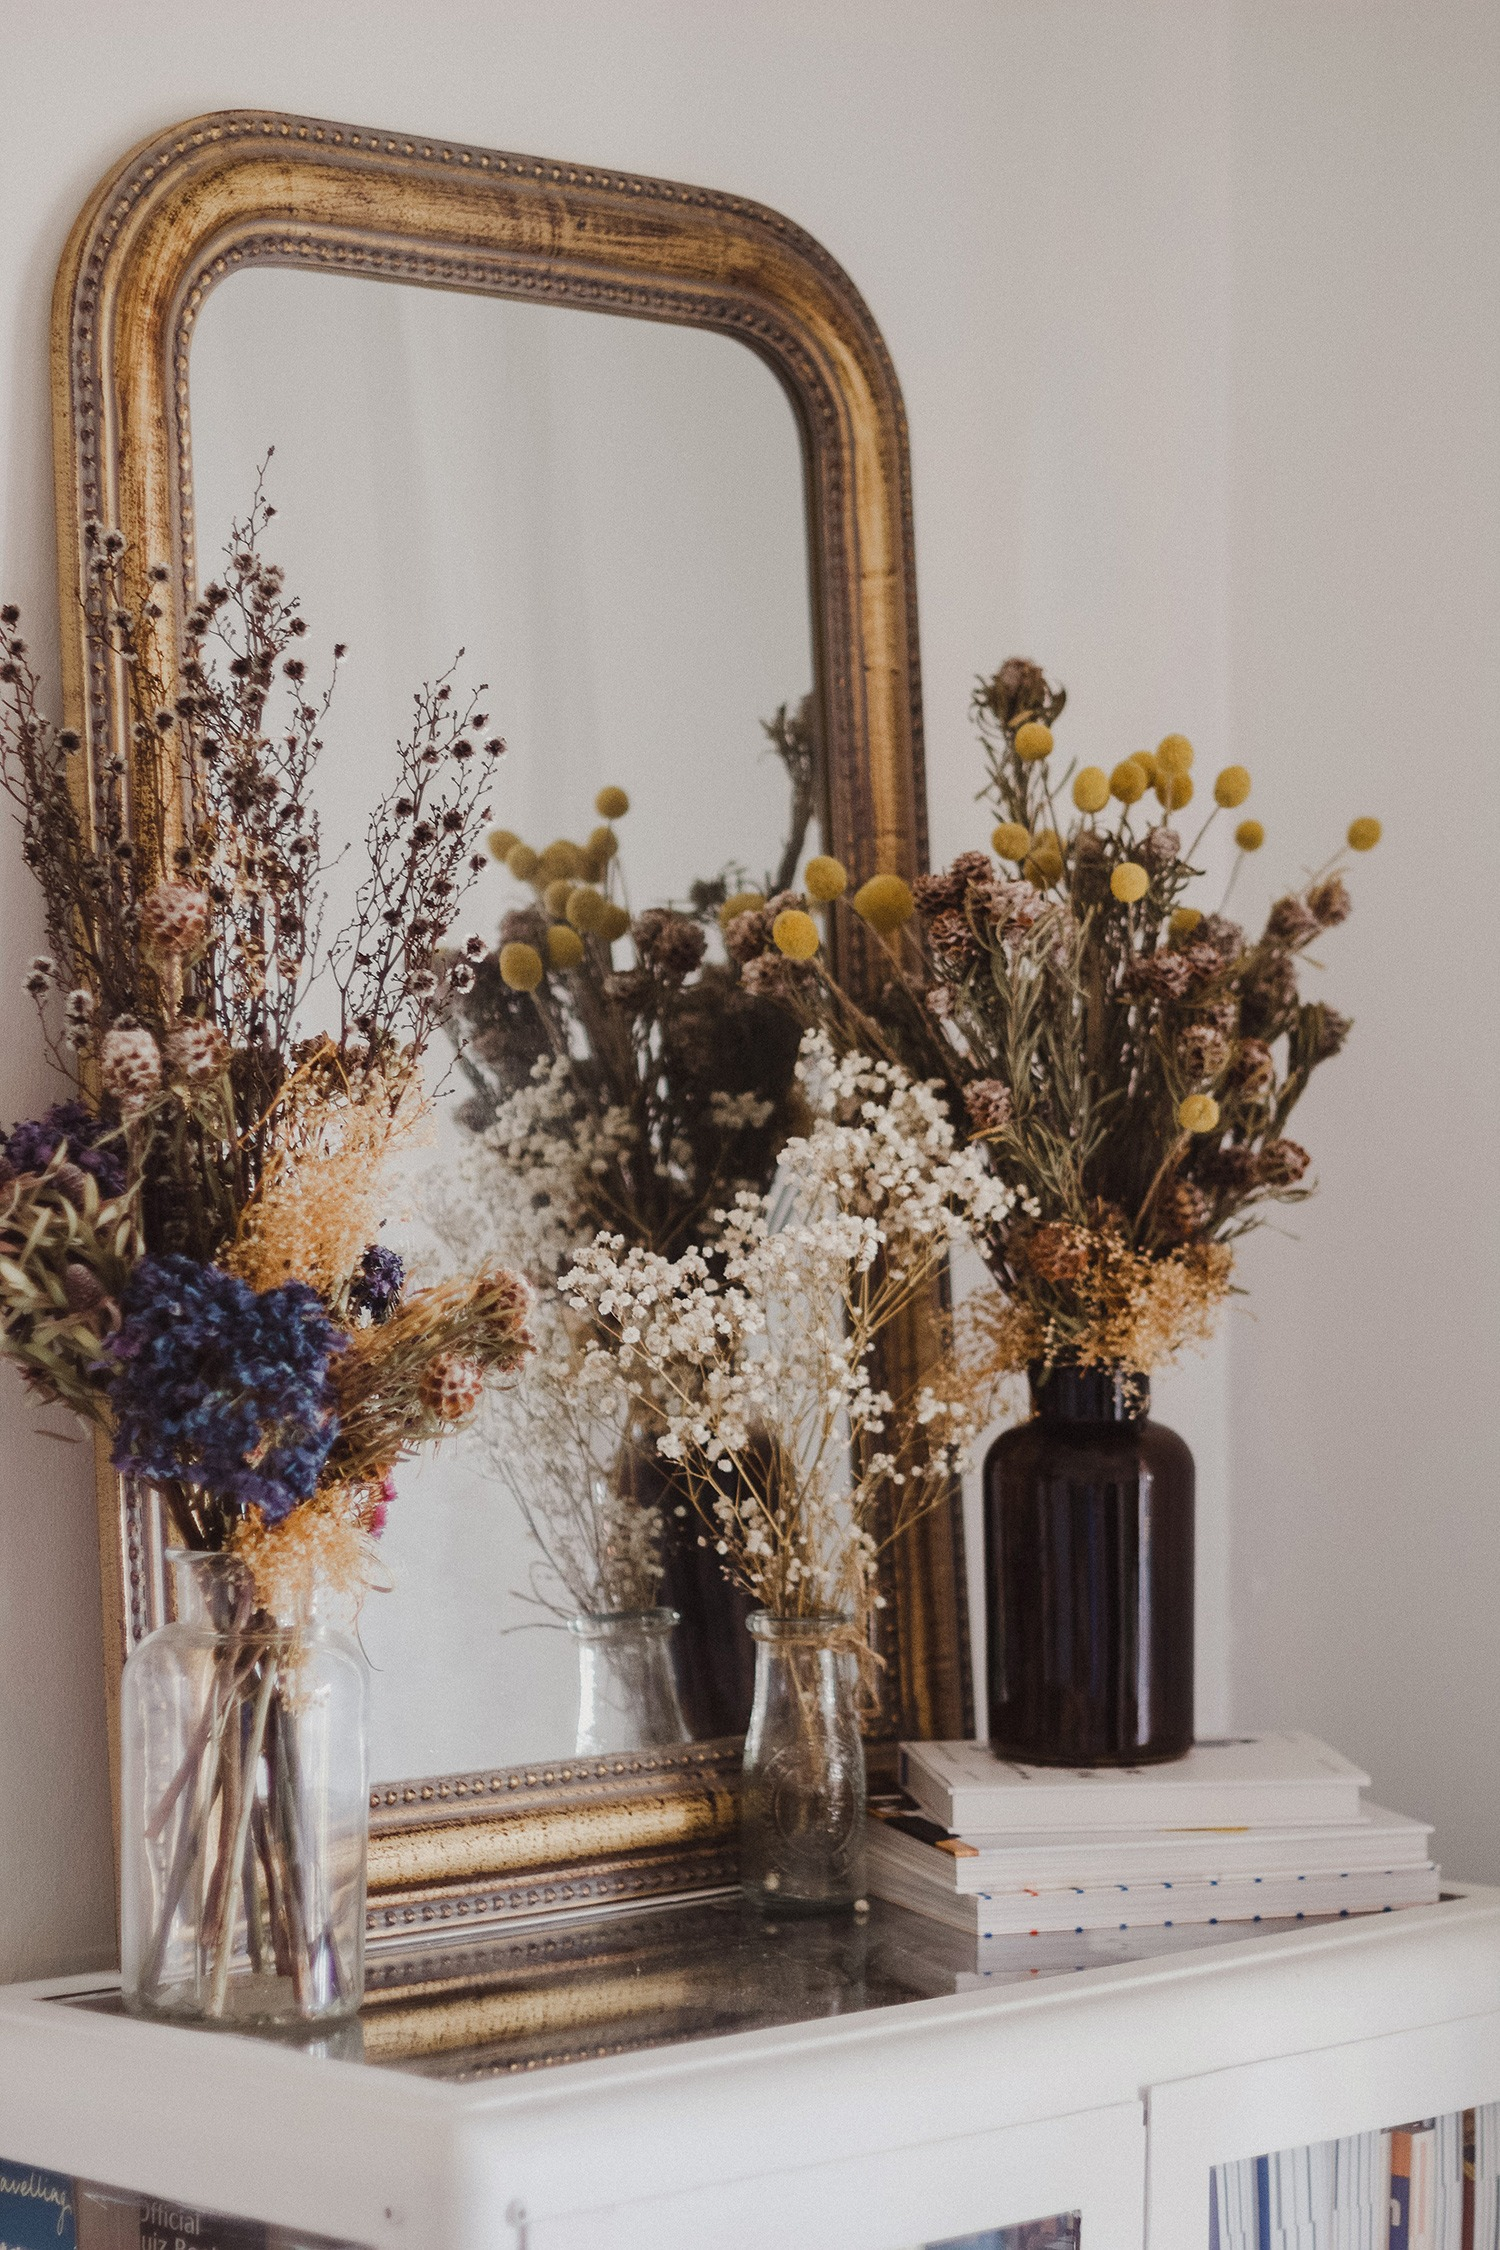 where to buy dried flowers online - bouquets of dried florals sitting in vases on a mantle